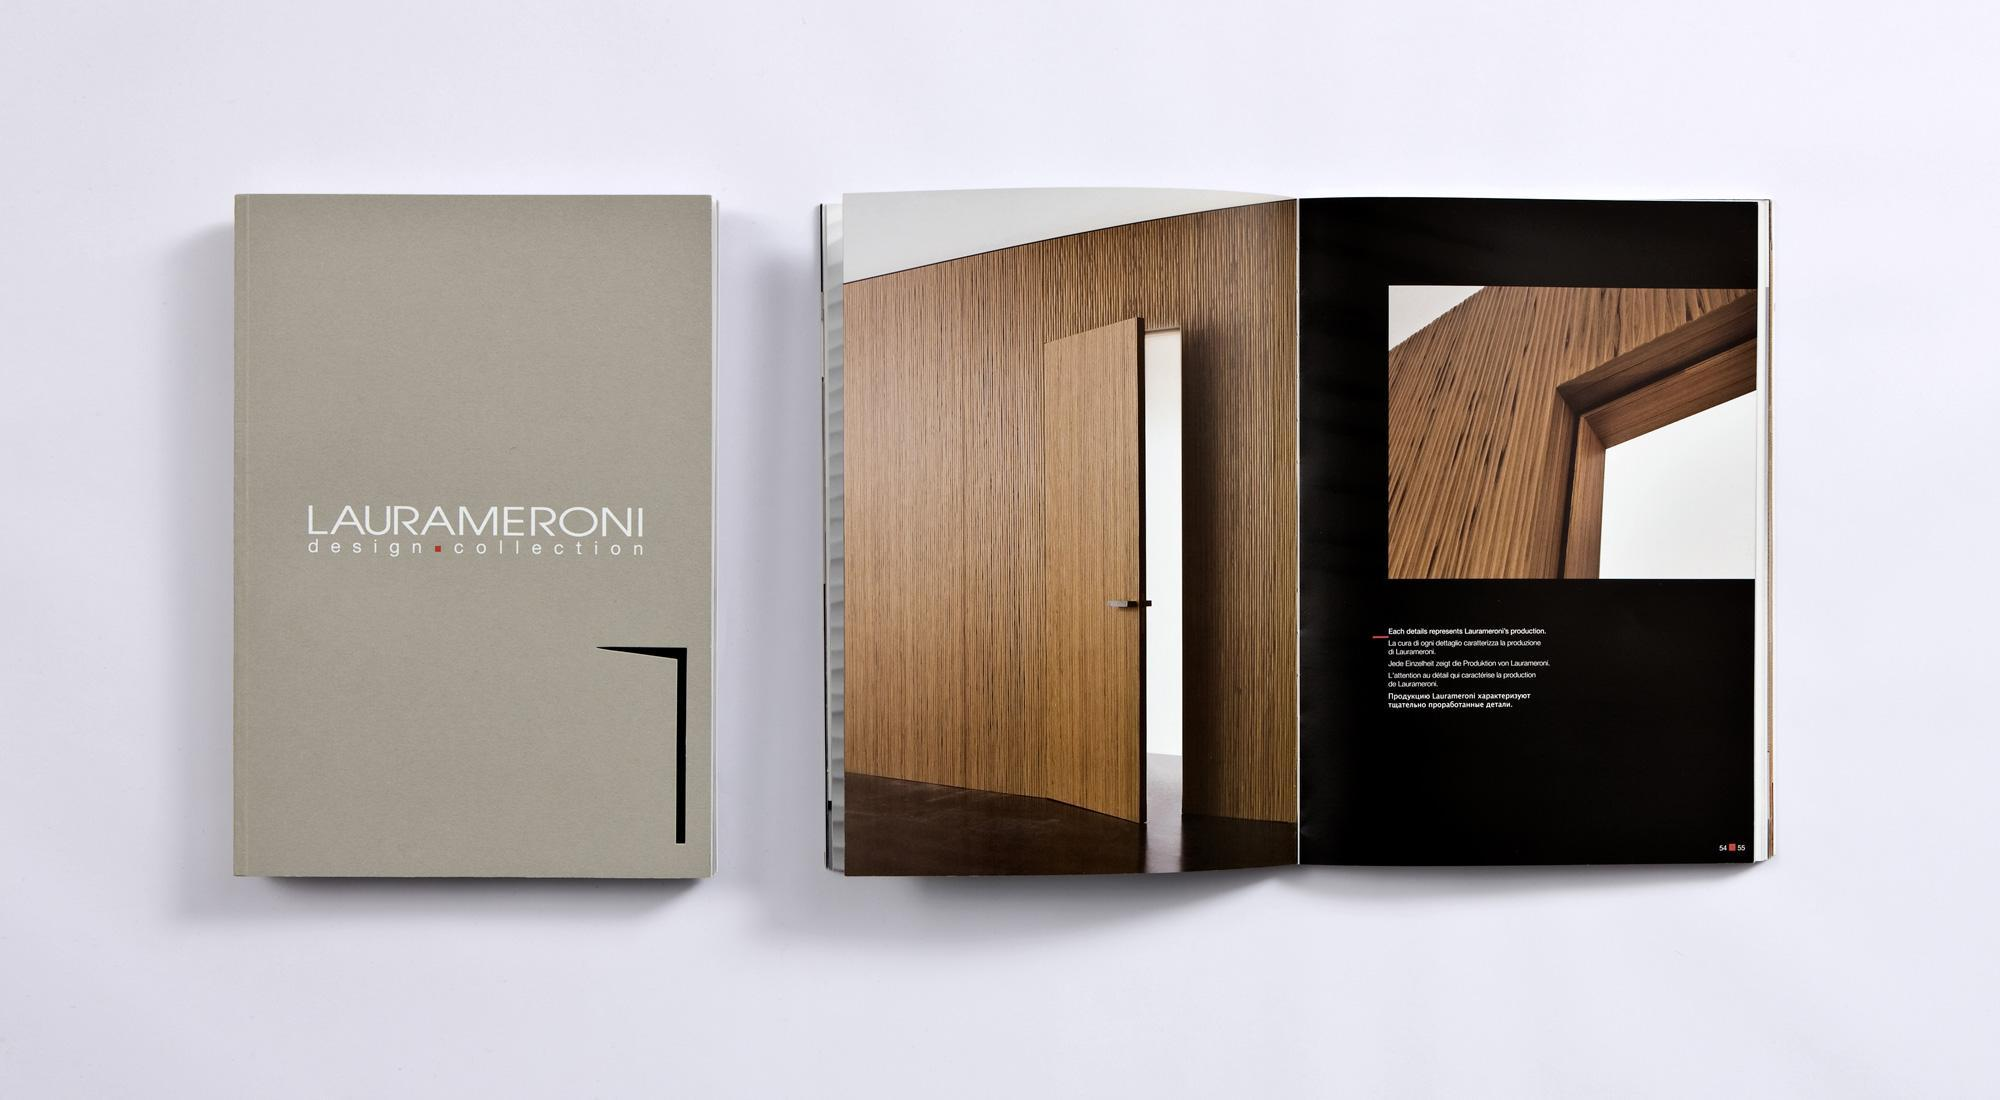 laurameroni design collection luxury integrated wall panels and doors catalogue free download